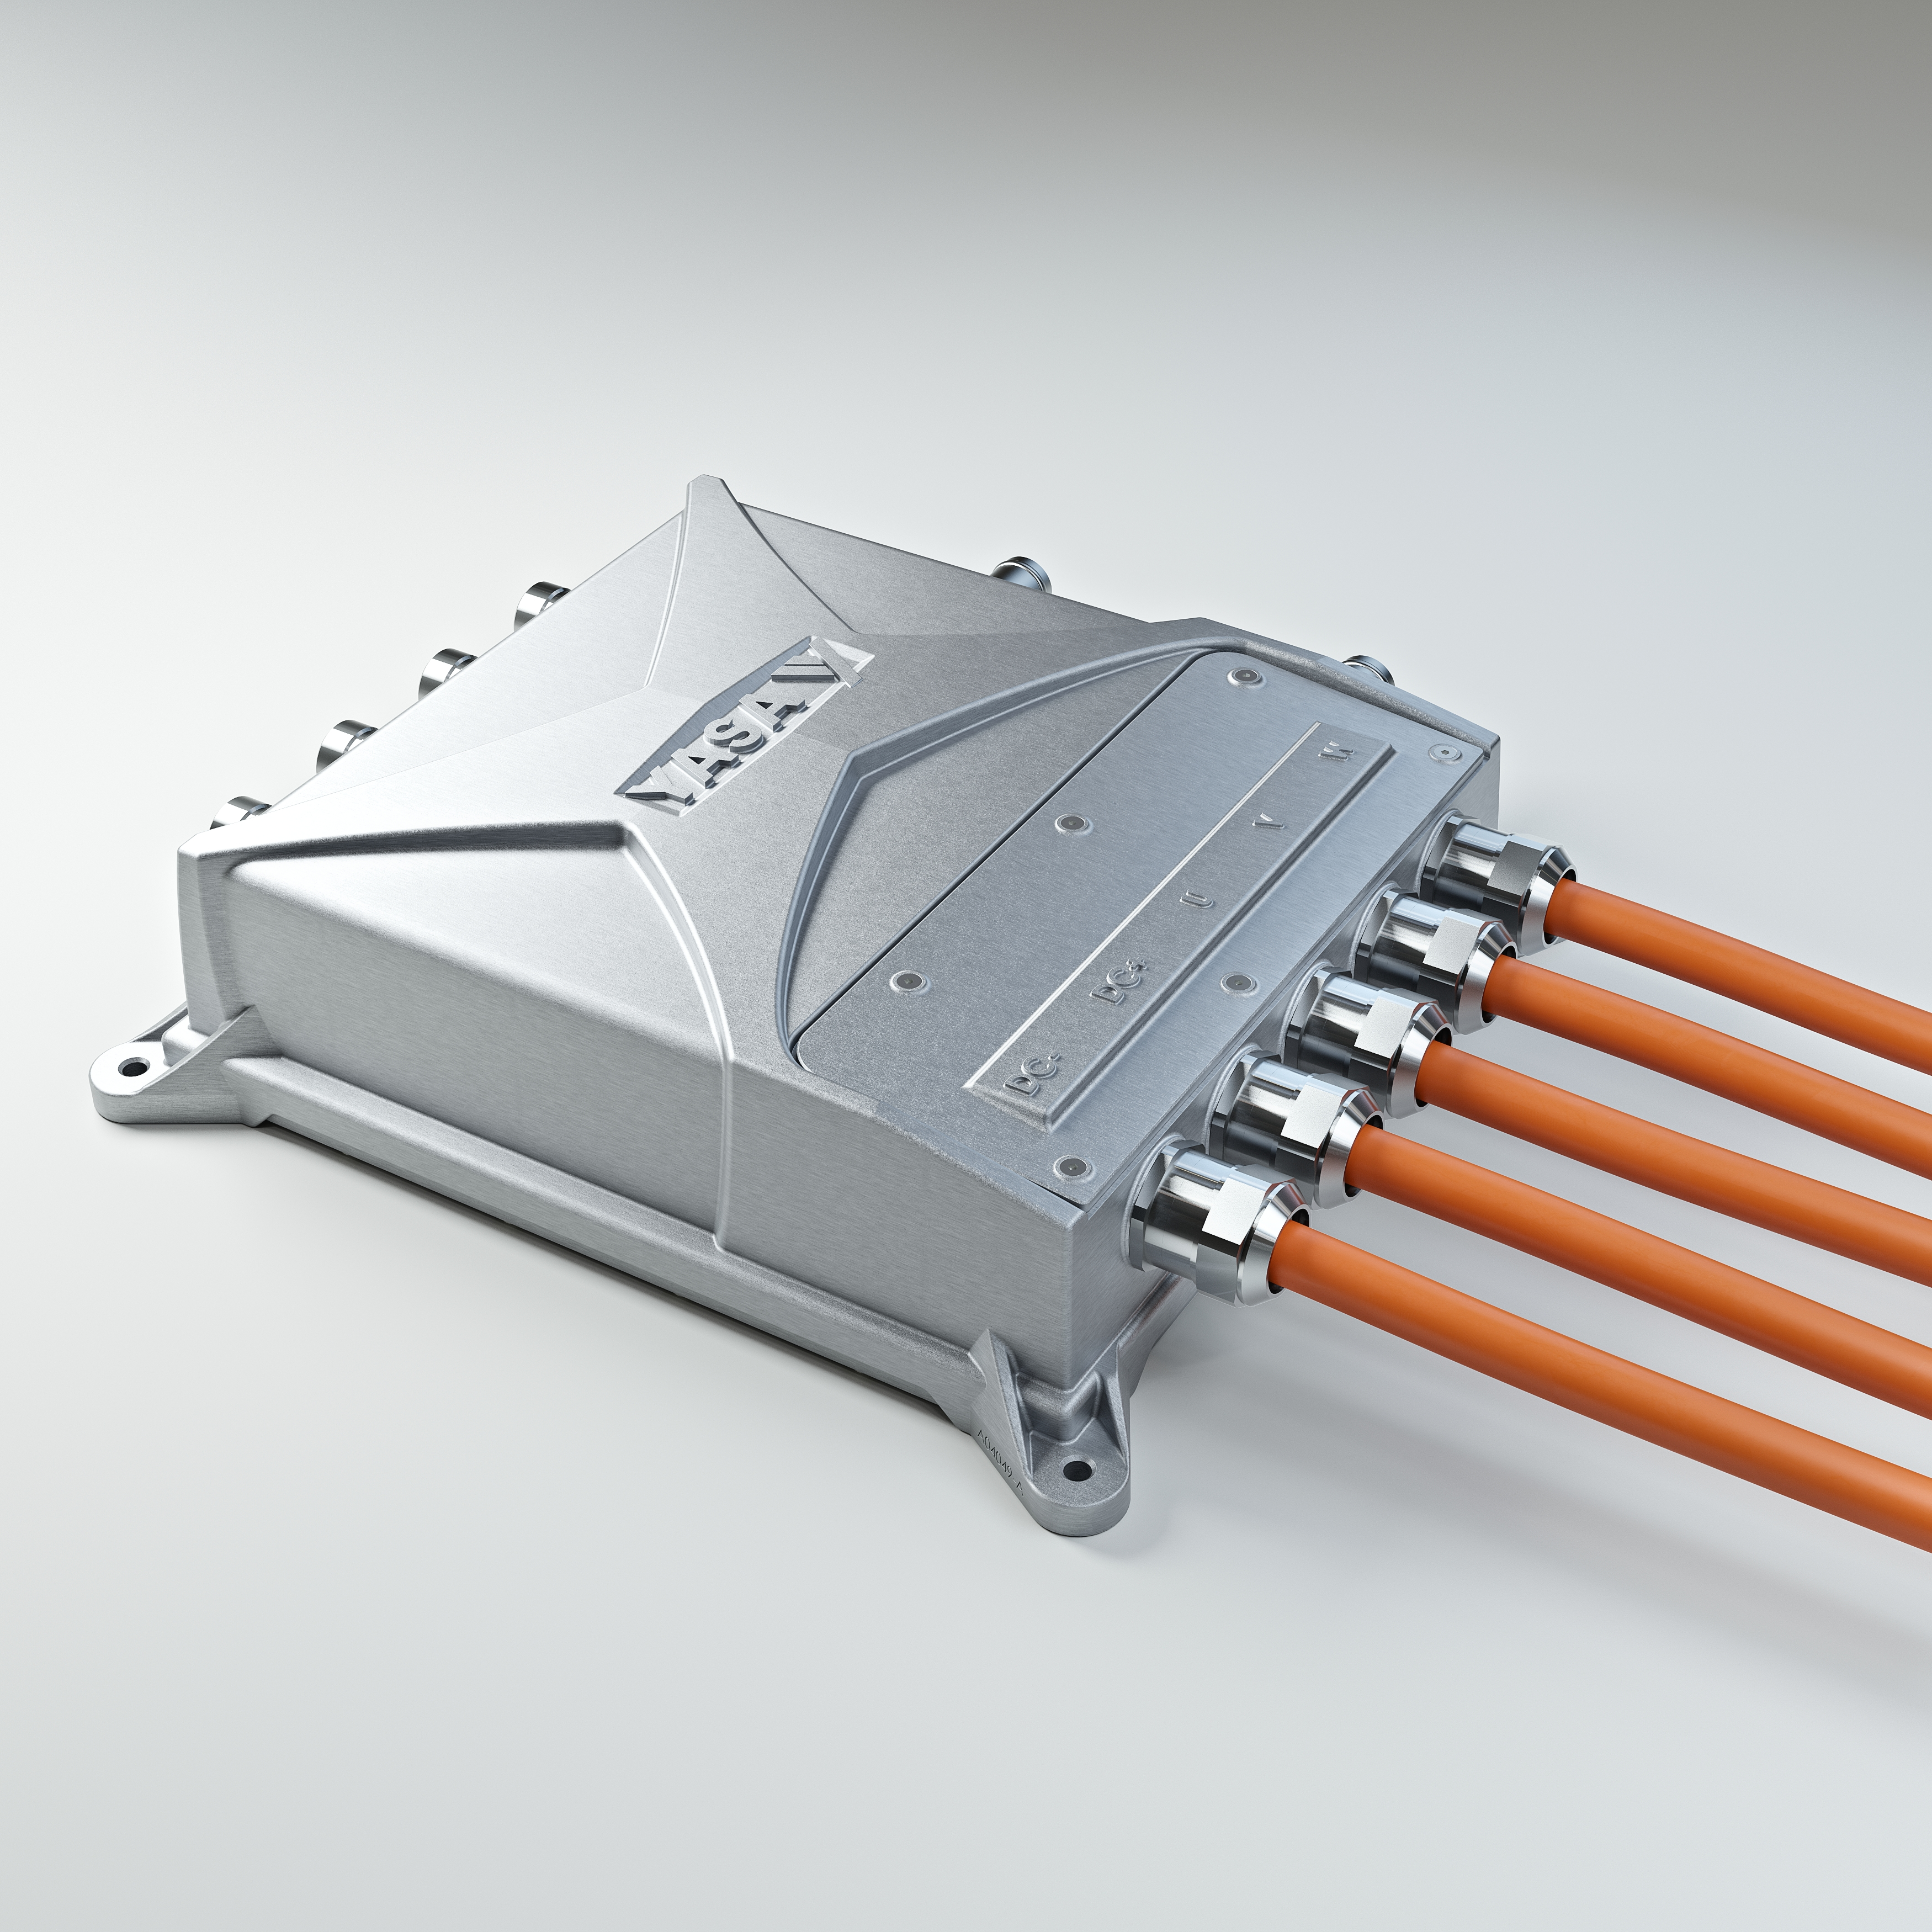 Electric Motor Company YASA Launches New Series of Motor